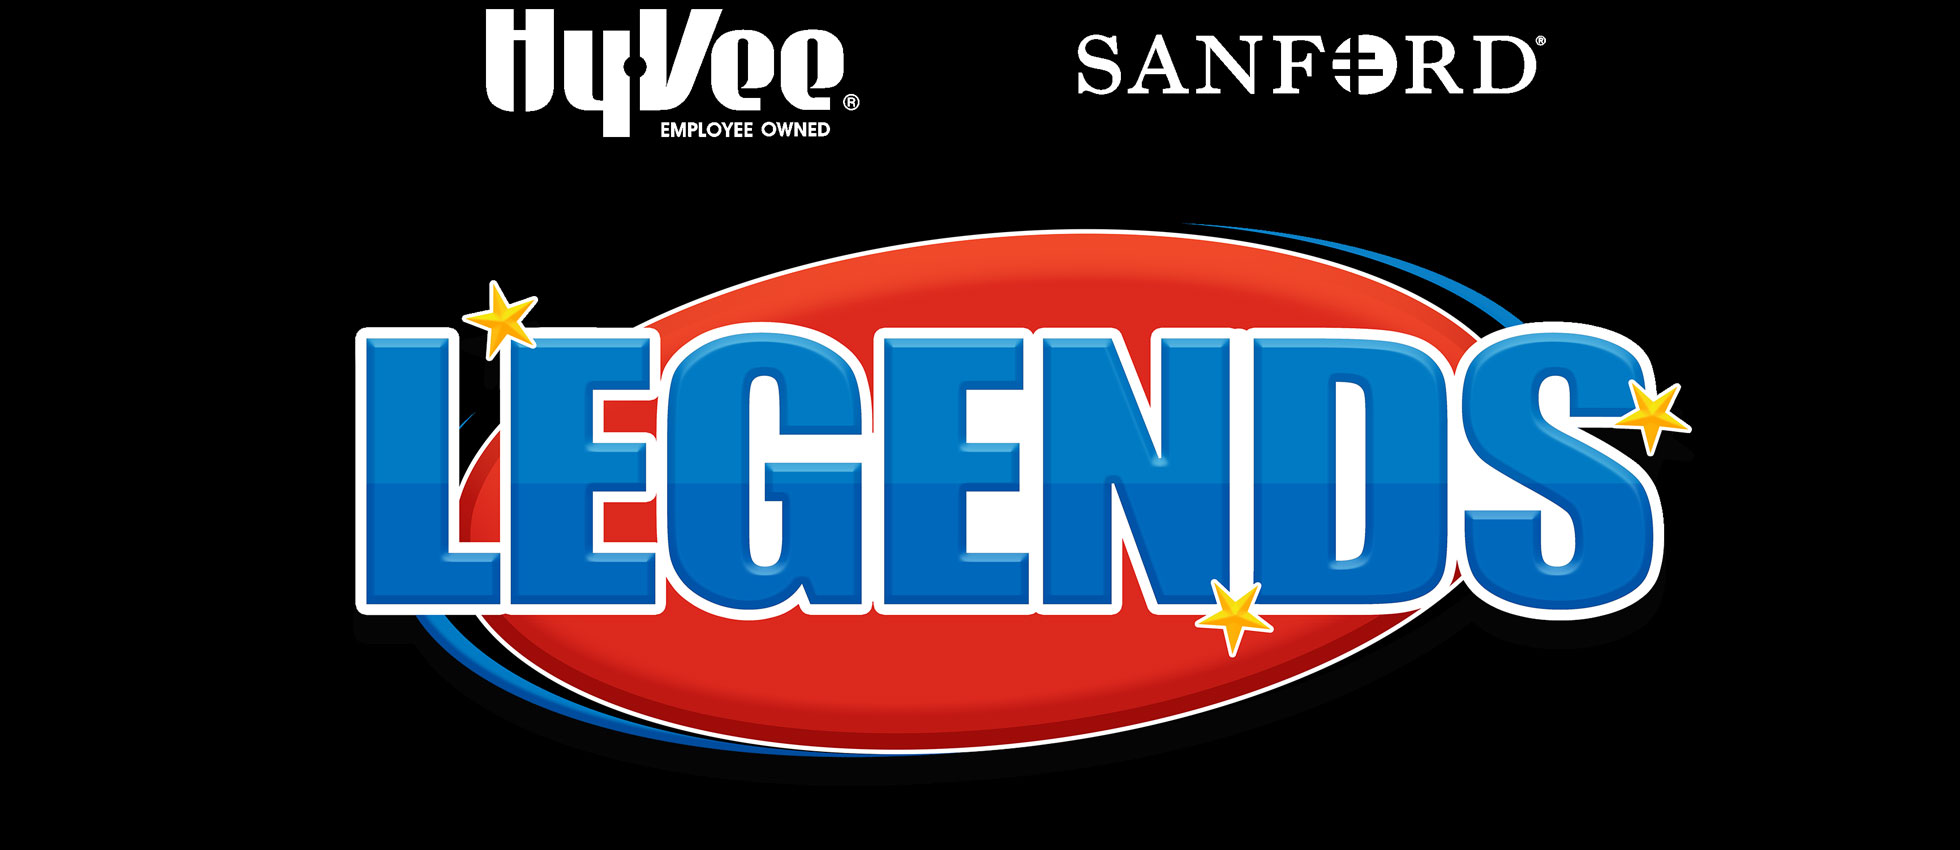 Legends for kids Sanford HyVee